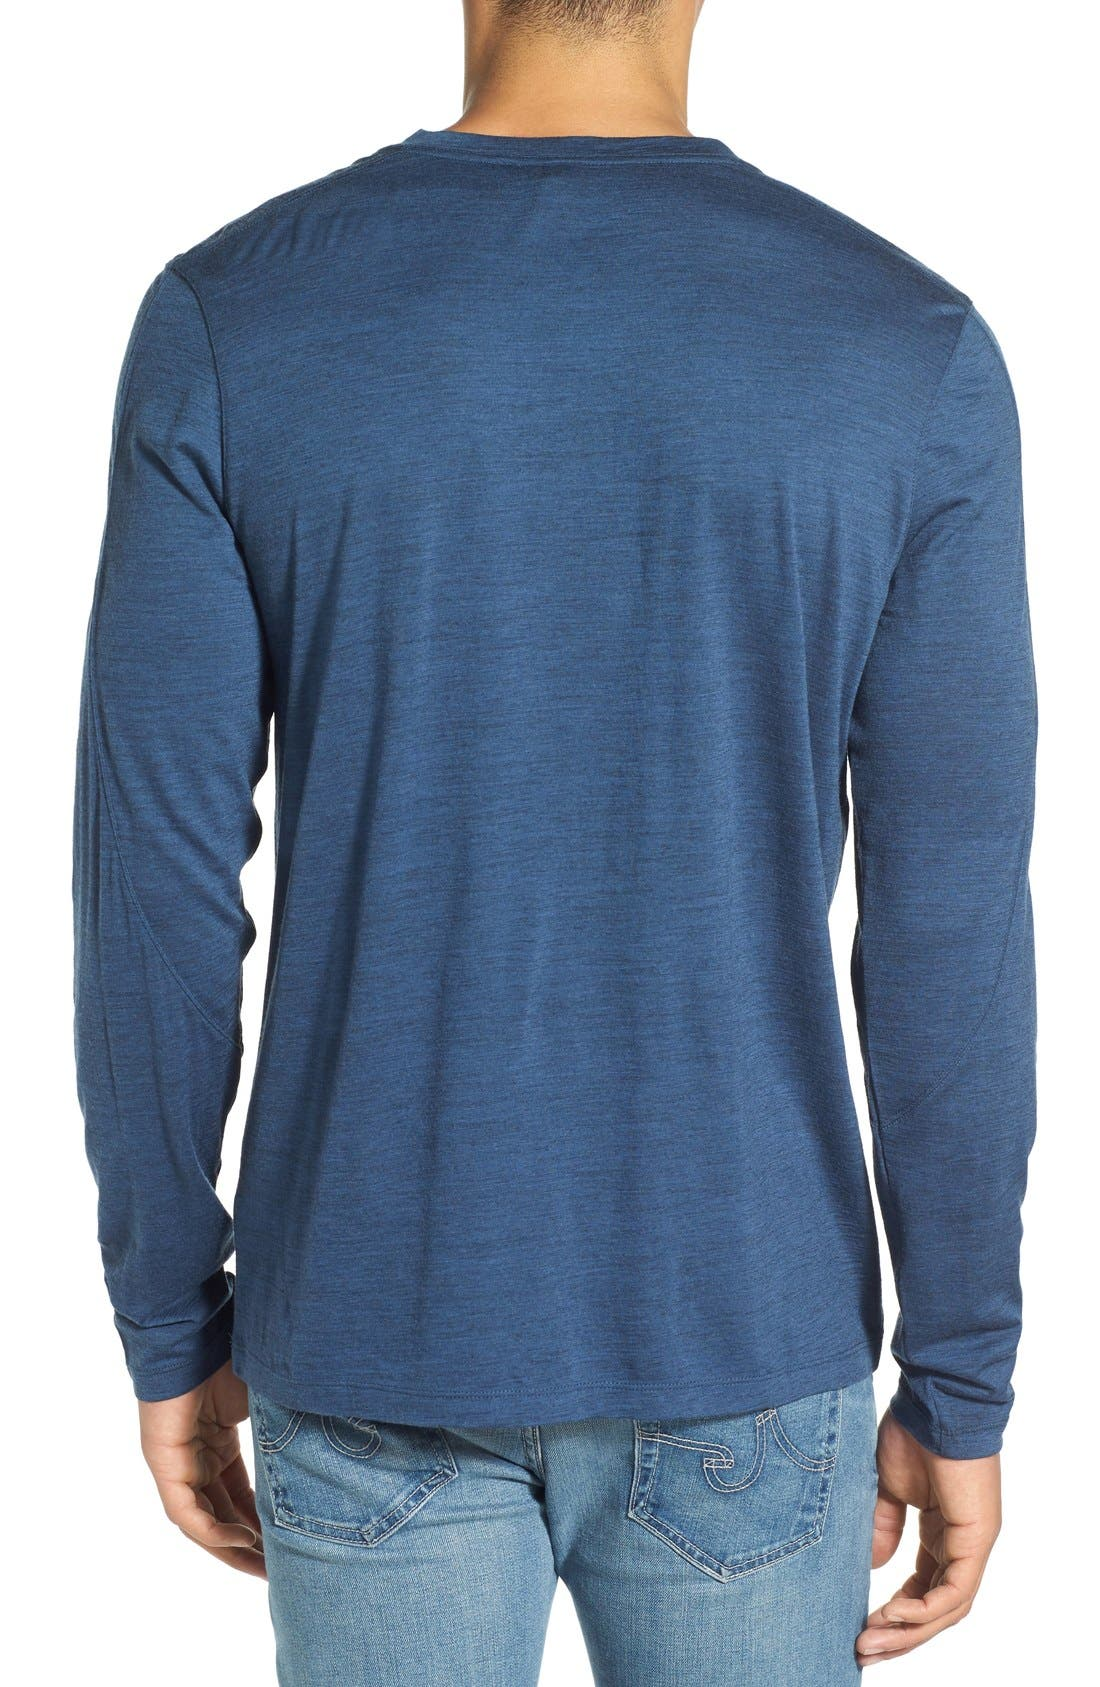 Alternate Image 2  - ibex 'OD' Merino Wool Long Sleeve Crewneck T-Shirt